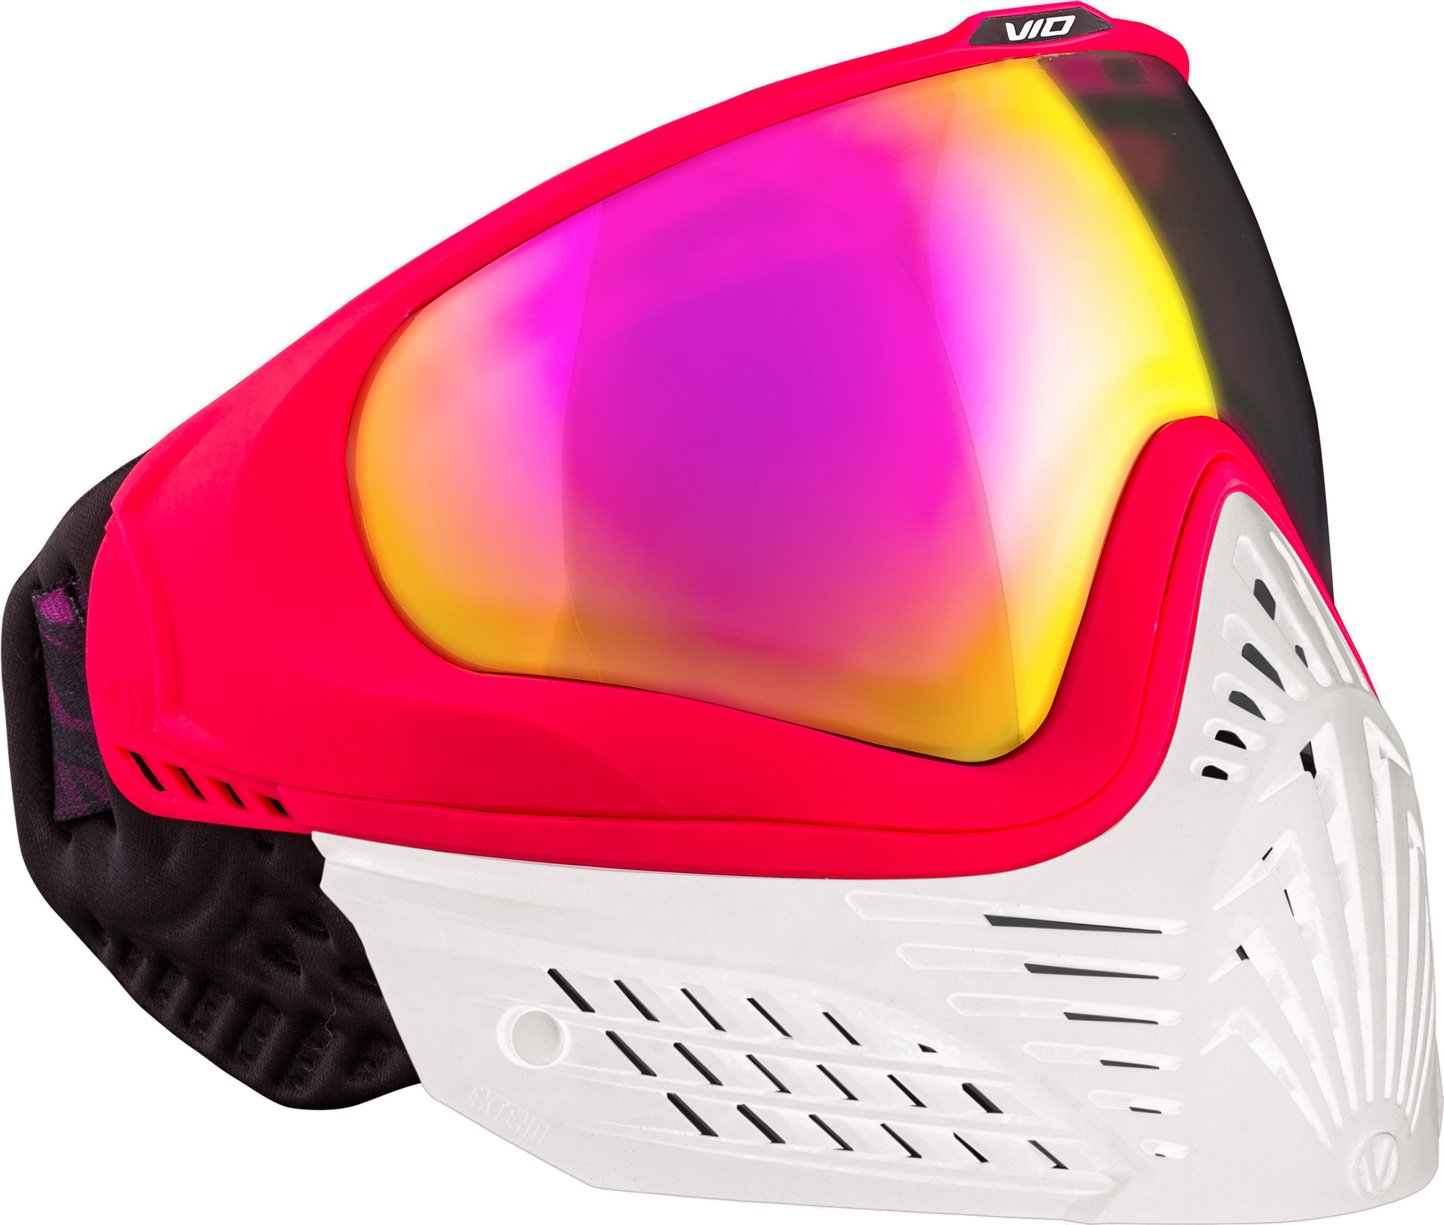 Virtue VIO Extend Thermal Paintball Goggles/Masks - White Ruby by Virtue Paintball